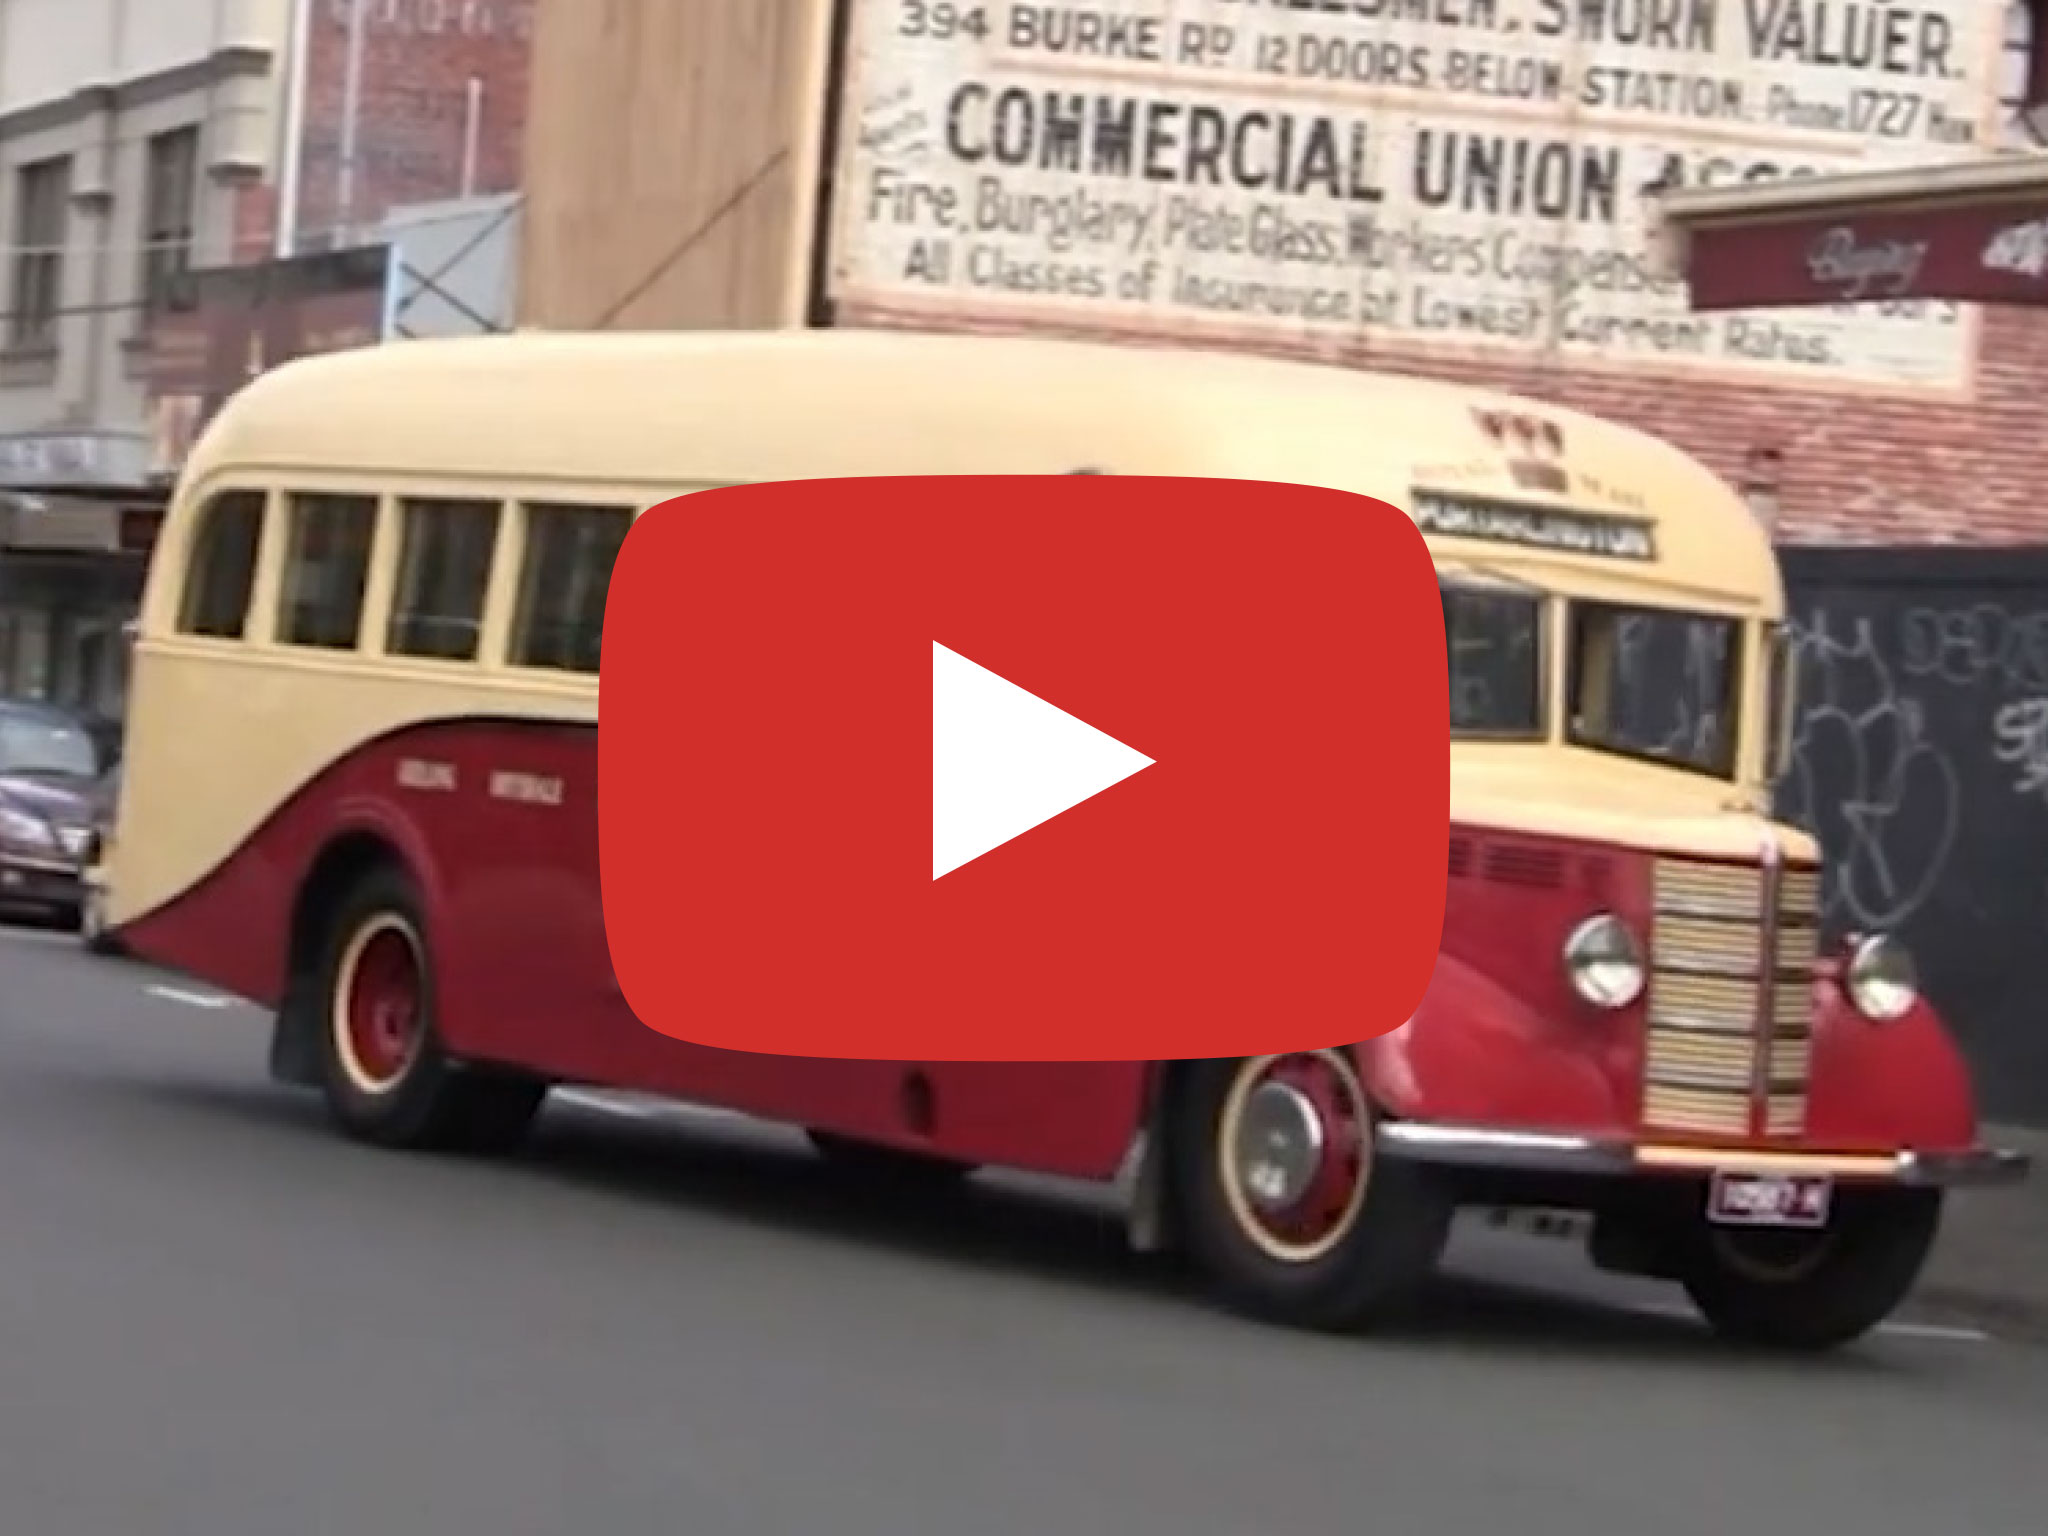 Bedford OB bus with Grice Body, 1946 model. Driving through streets of Cantebury and Camberwell, VIC. Video taken by David Kemp in 2014.